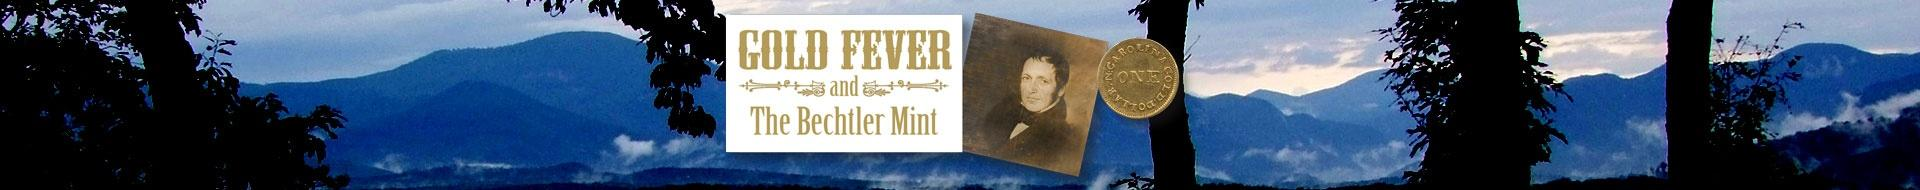 Gold Fever & The Bechtler Mint